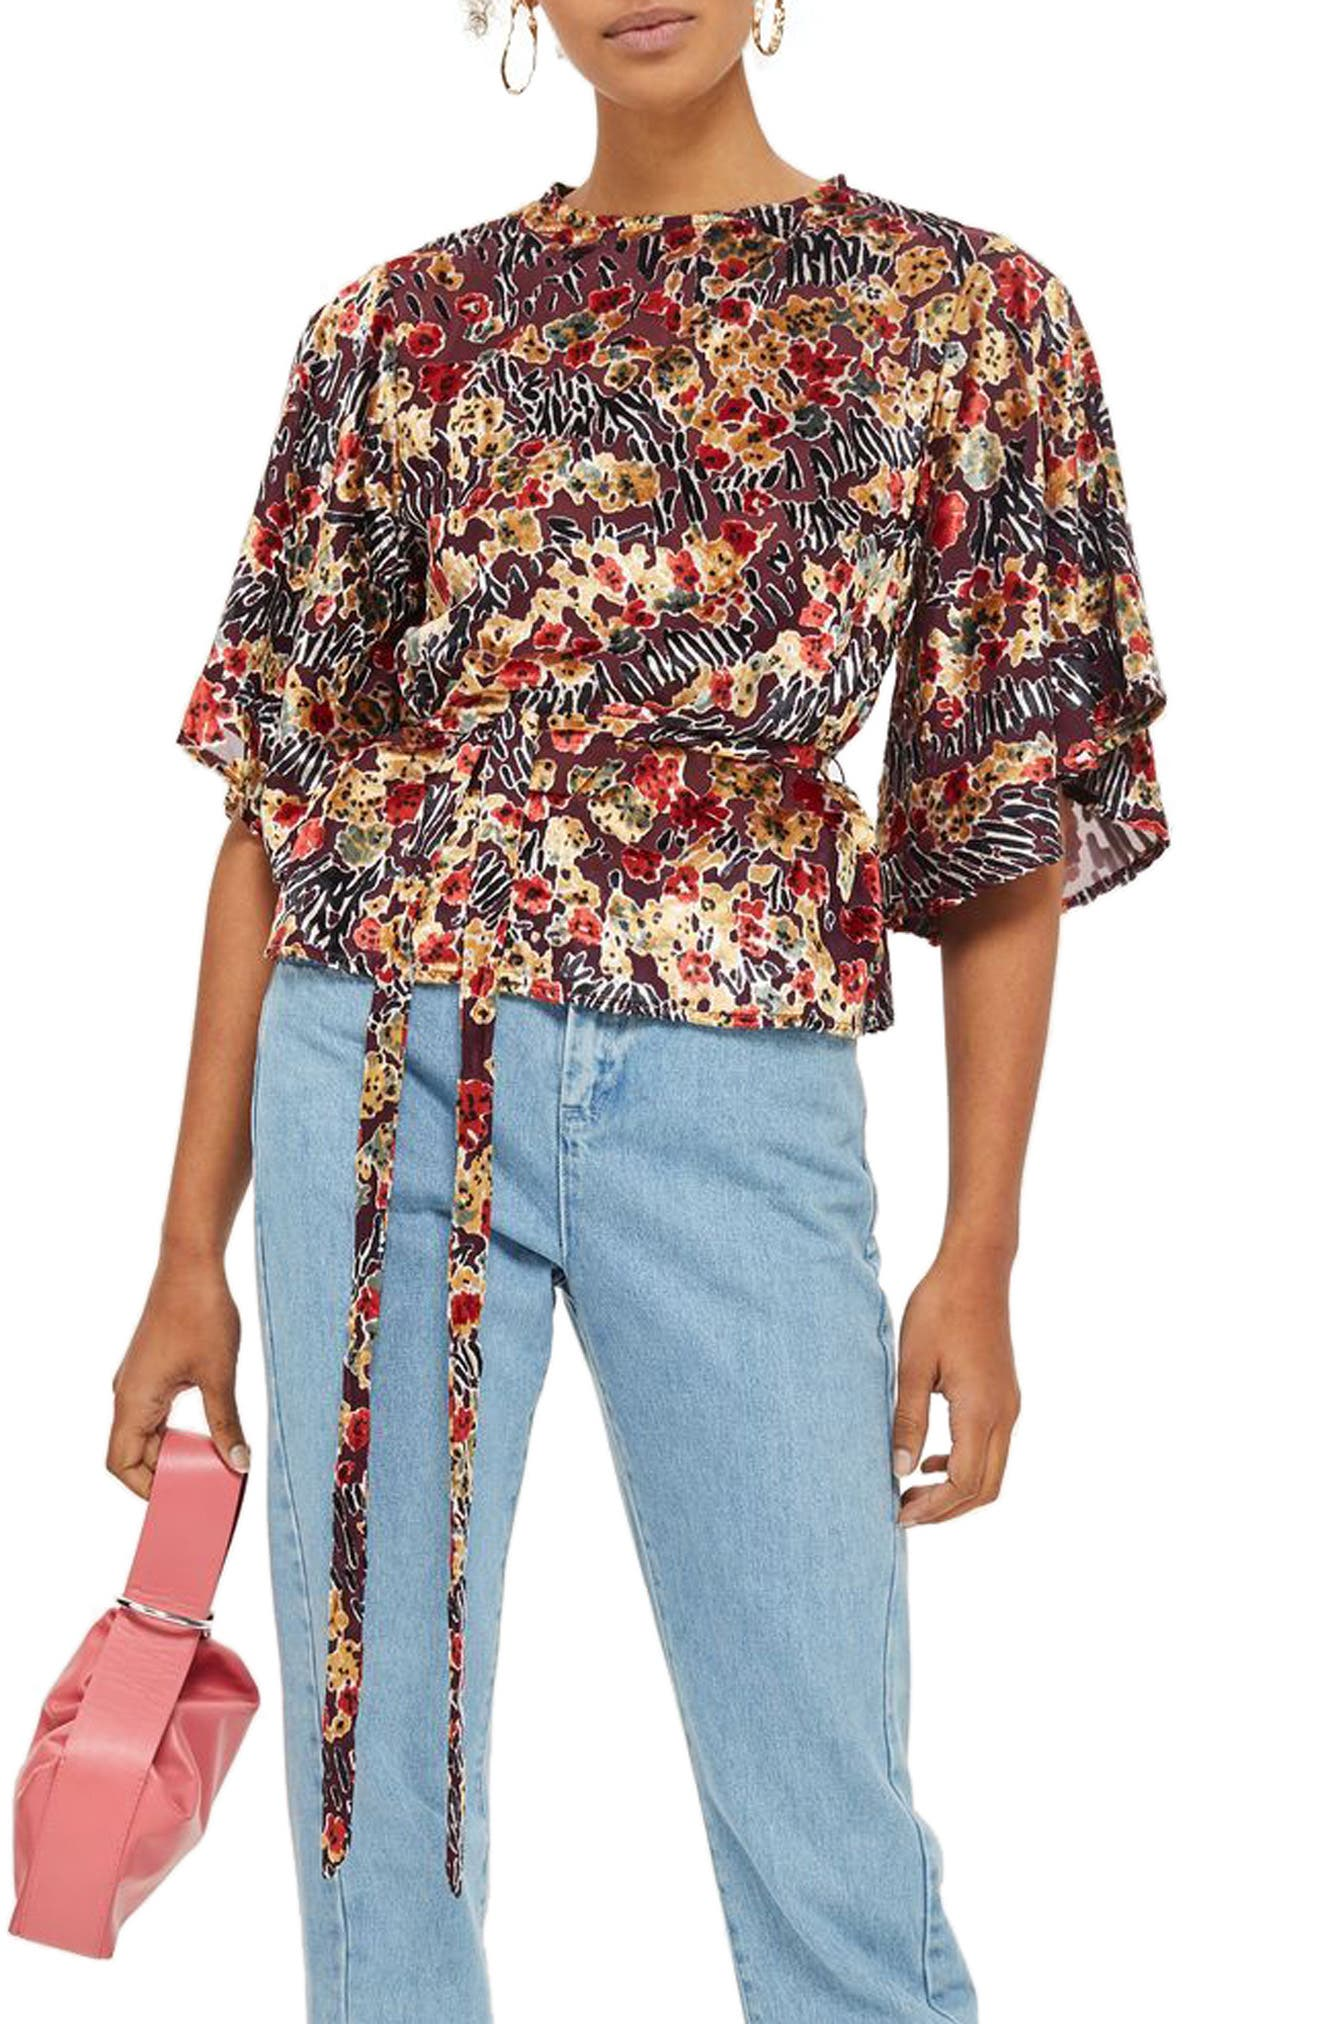 Devoré Bell Sleeve Blouse,                             Main thumbnail 1, color,                             Red Multi